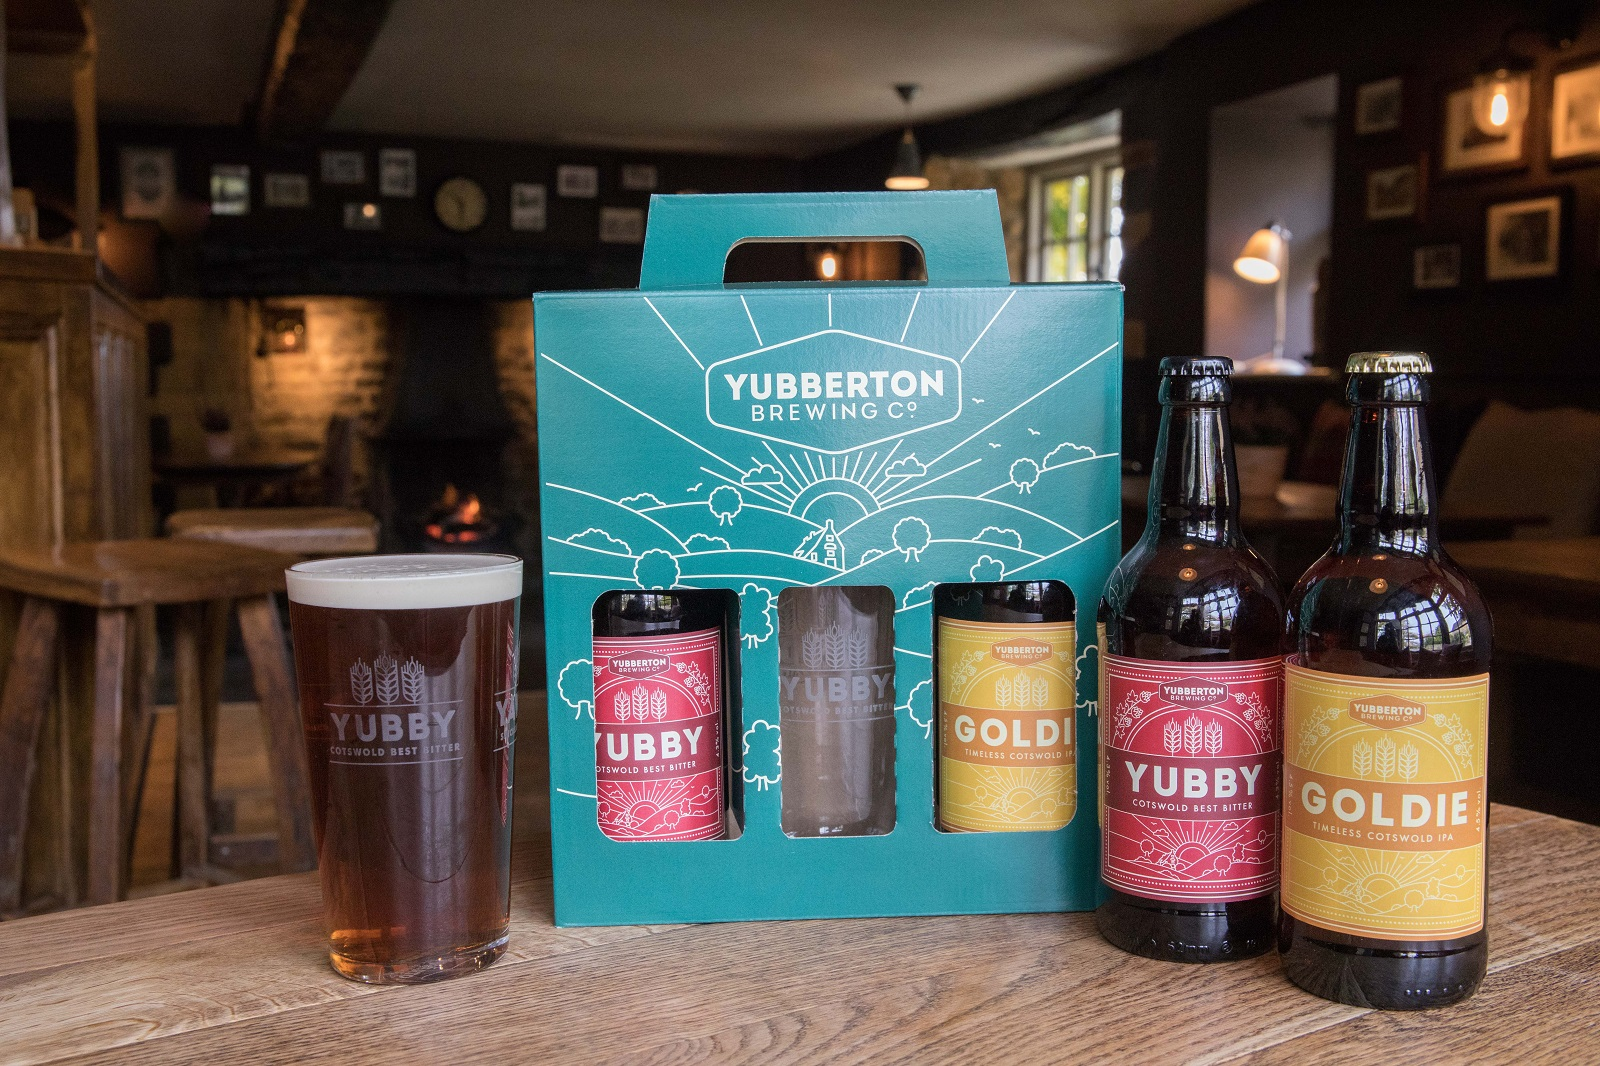 Purchase a 'Yubby' Ale Gift Set - Our own 'Yubby' ale gift sets are the perfect gift for ale lovers. Each gift set includes 3 bottles (1 x Yawnie, 1 x Yubby and 1 x Goldie) packaged in a gift box with carry handle.If you're staying with us, you can purchase one of these sets online as an optional extra for just £9.95 or drop in to the pub and pick one up!